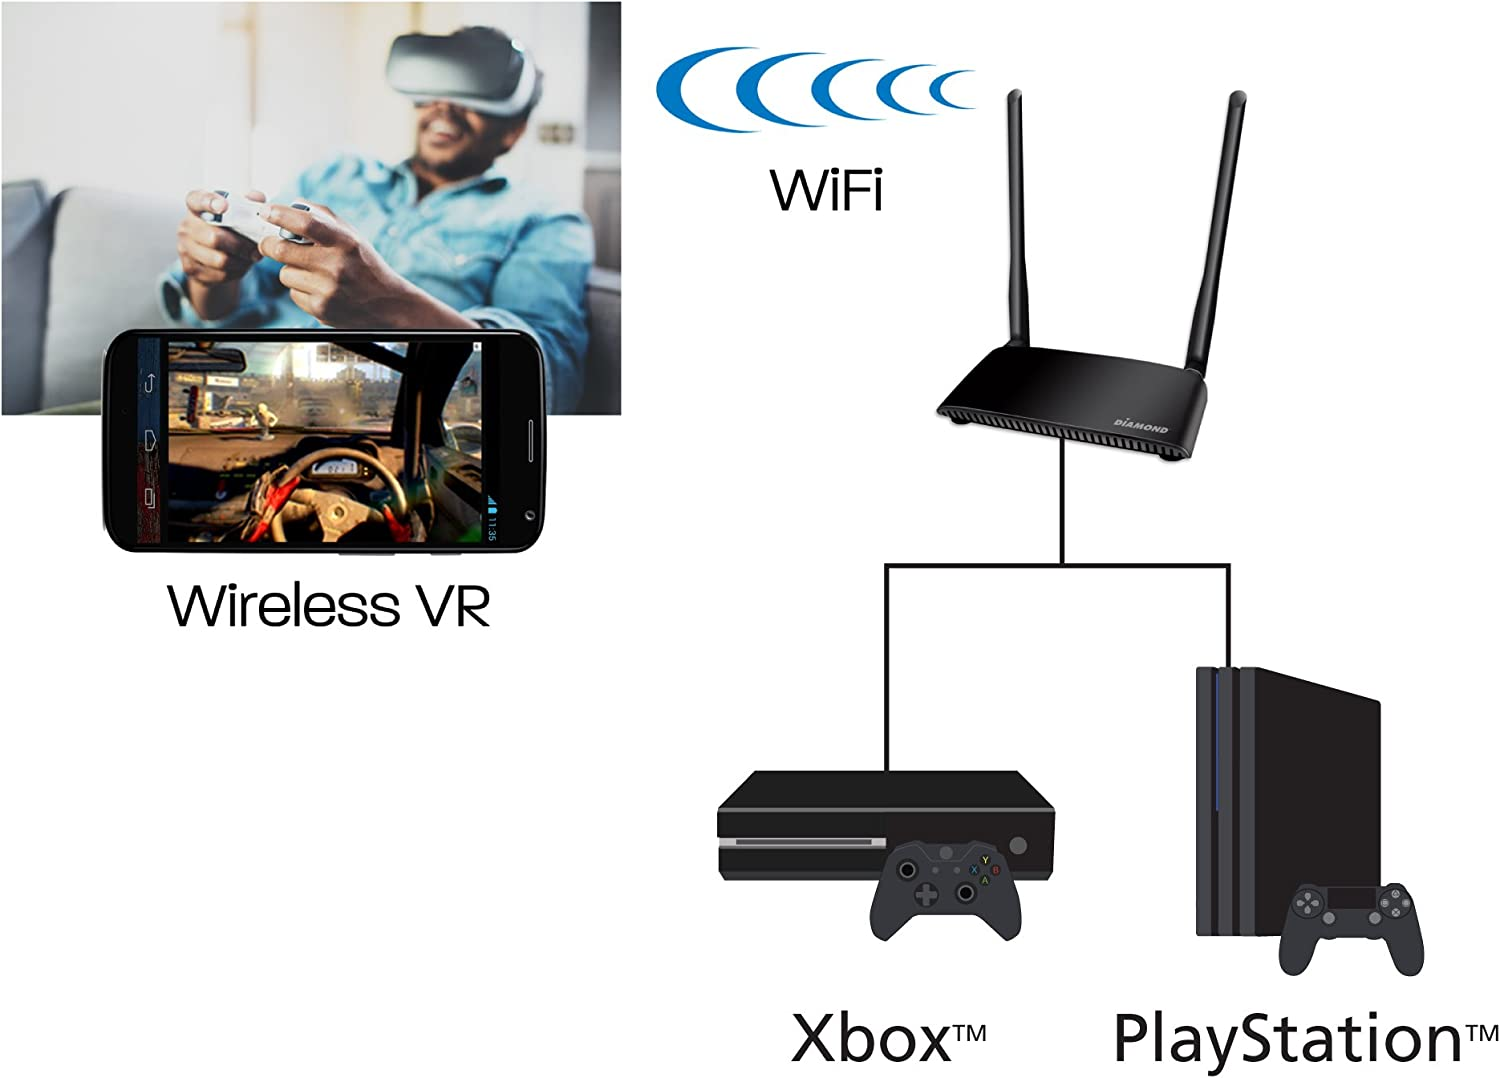 Channel 2X2 Wireless HDMI 5GHz Kit Diamond Multi Stream HD 1080P Video//Audio up to 150 ft from Any HDMI Source to HDTV//Monitor//Projector VS300M